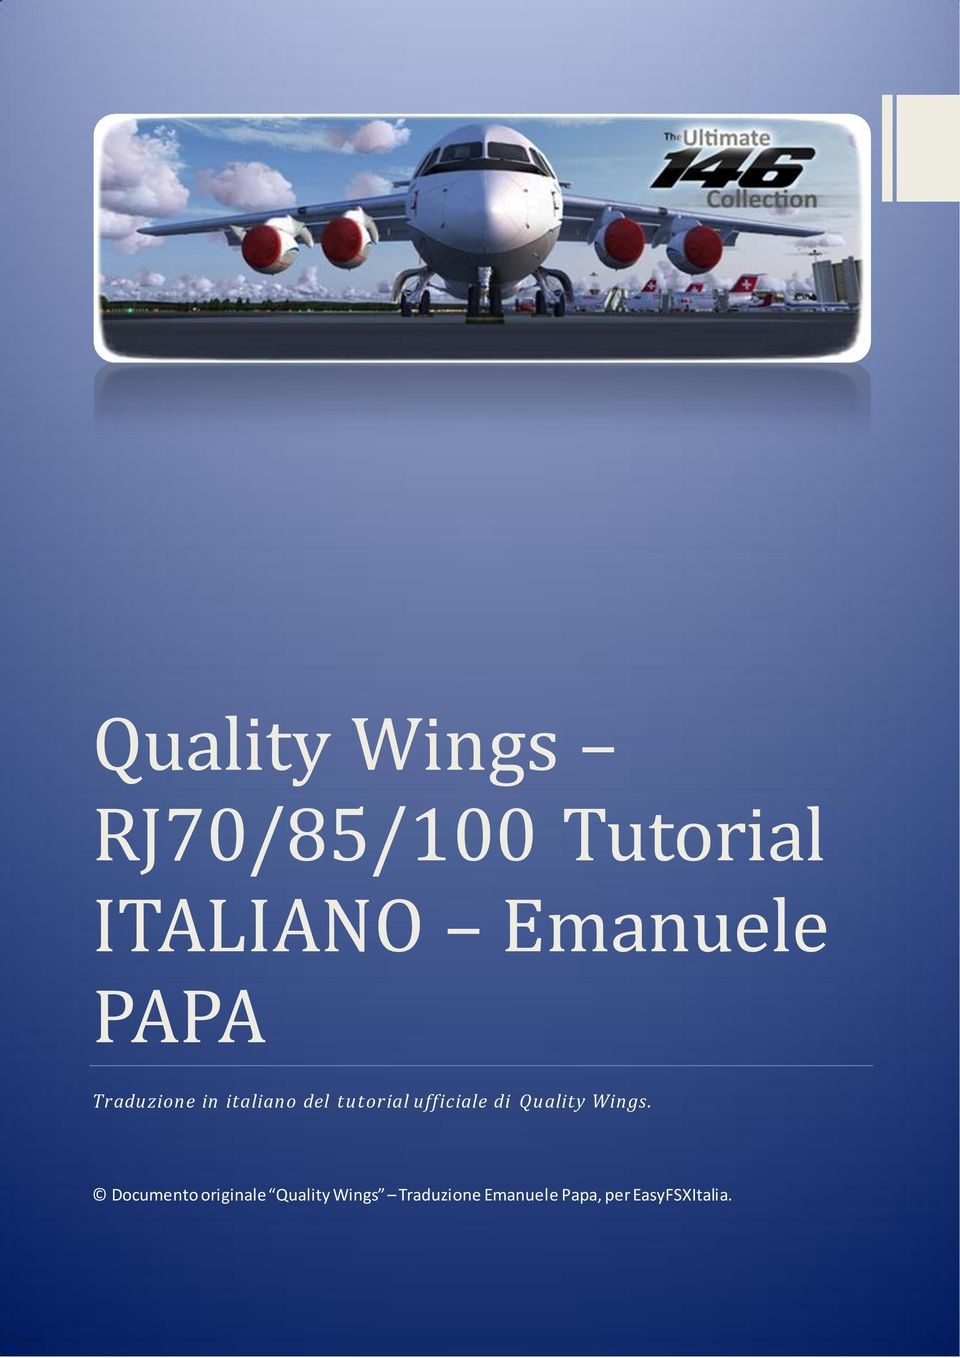 ufficiale di Quality Wings.